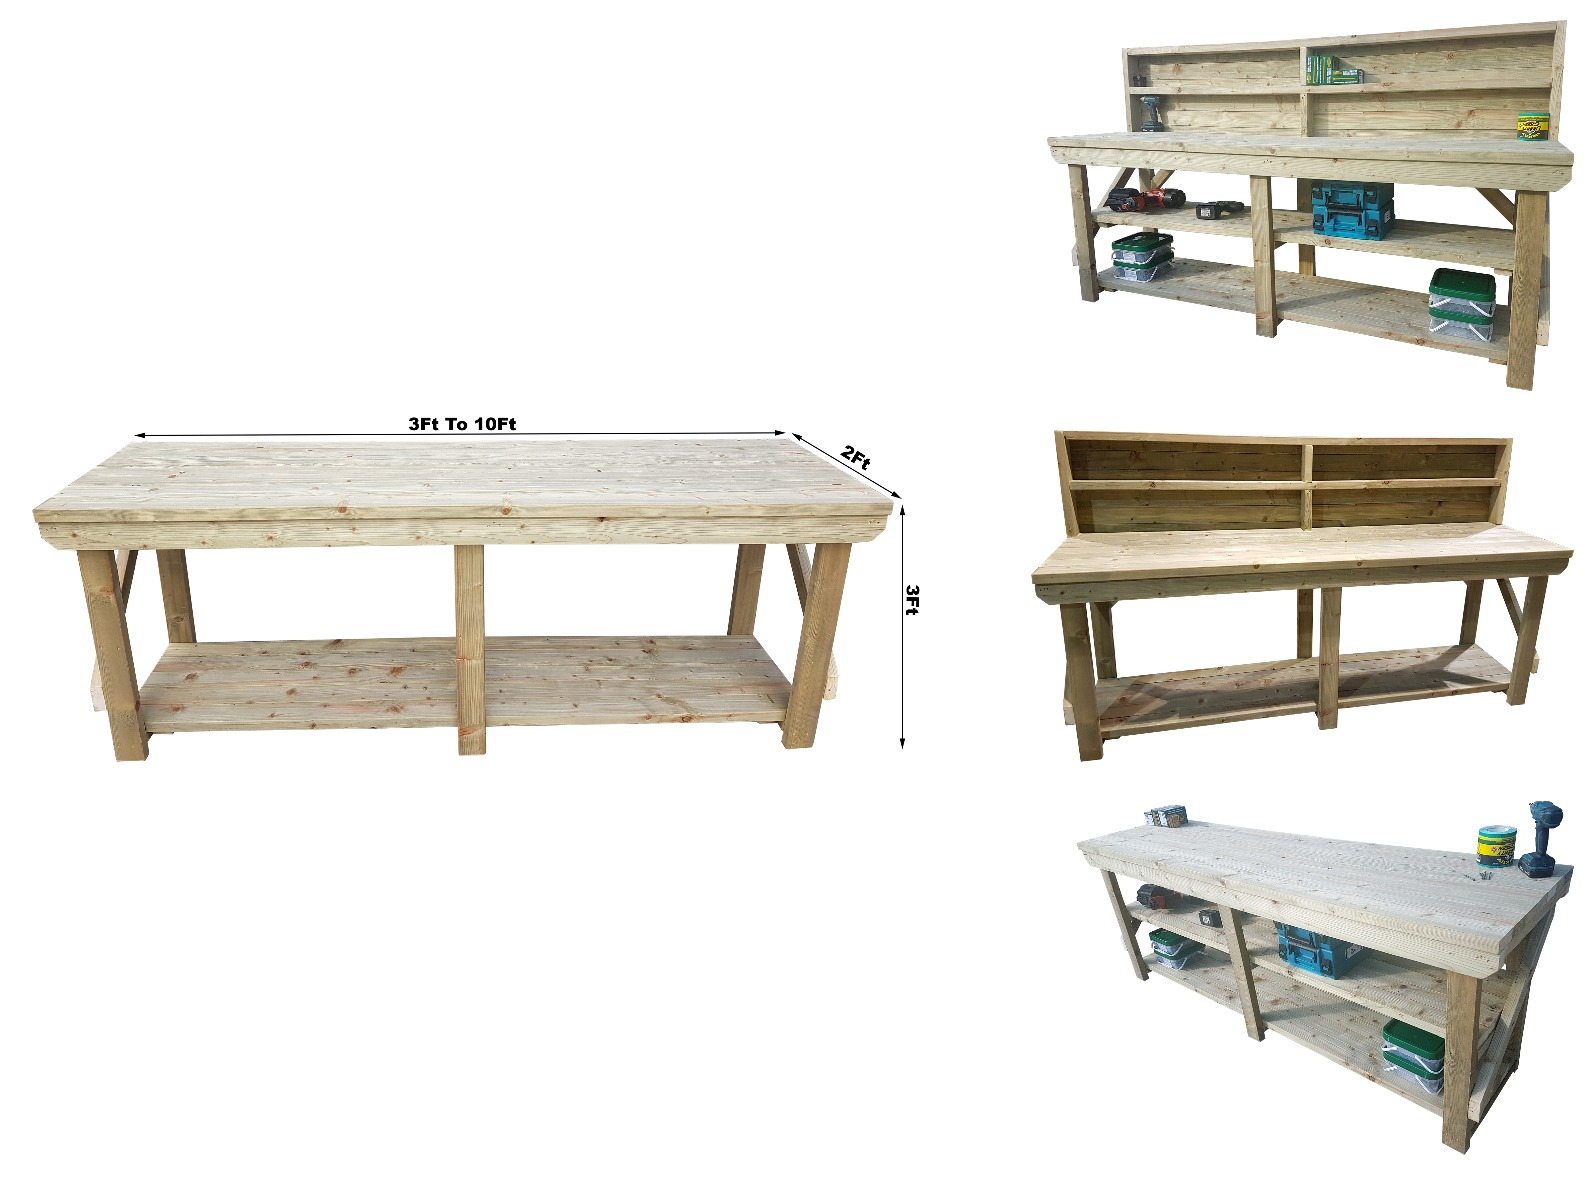 Treated Outdoor Workbenches Affordable Prices Call Now Arbor Garden Solutions